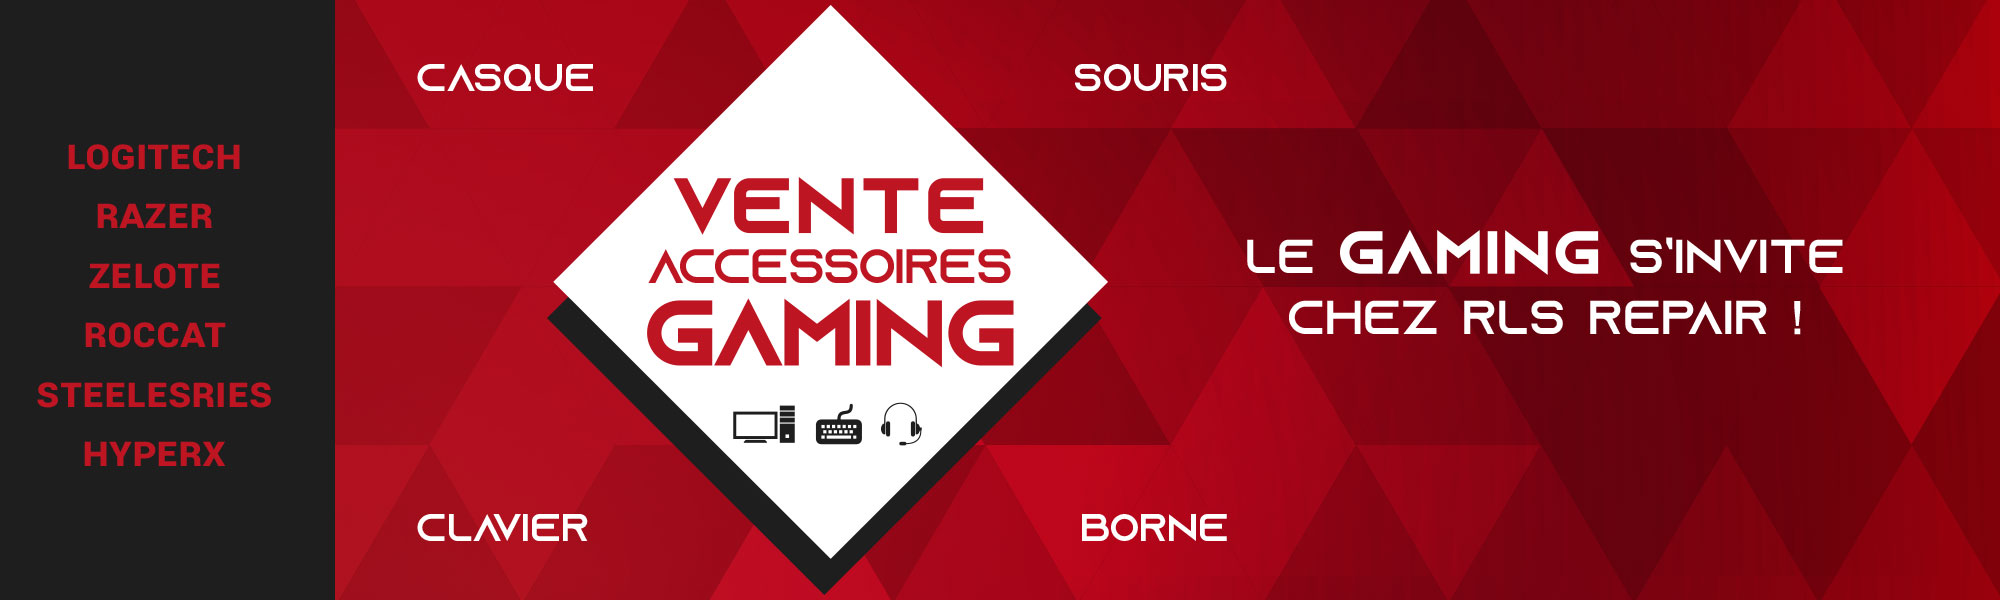 Le Gaming s'invite chez RLS'Repair